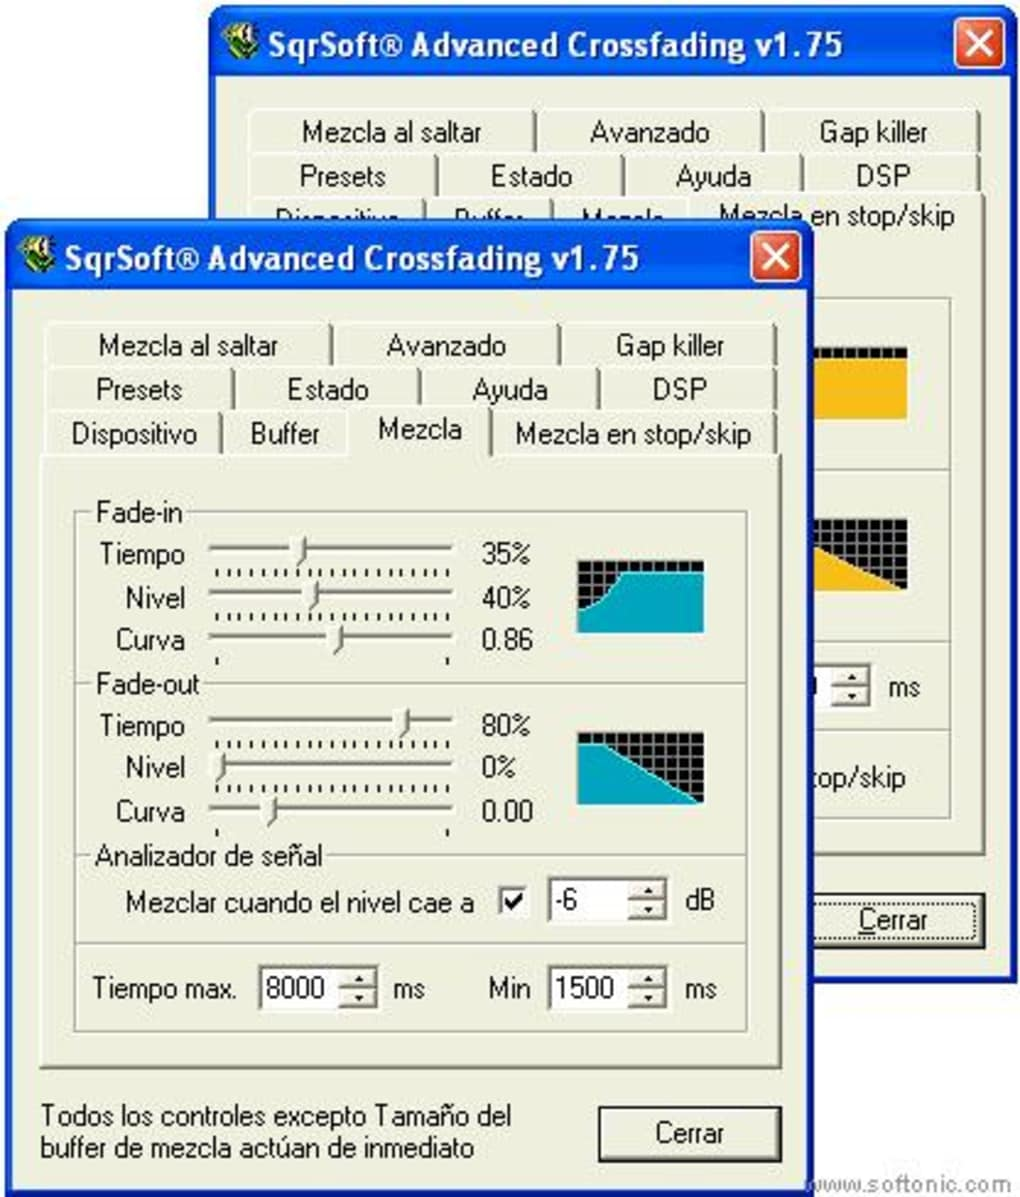 sqrsoft advanced crossfading output